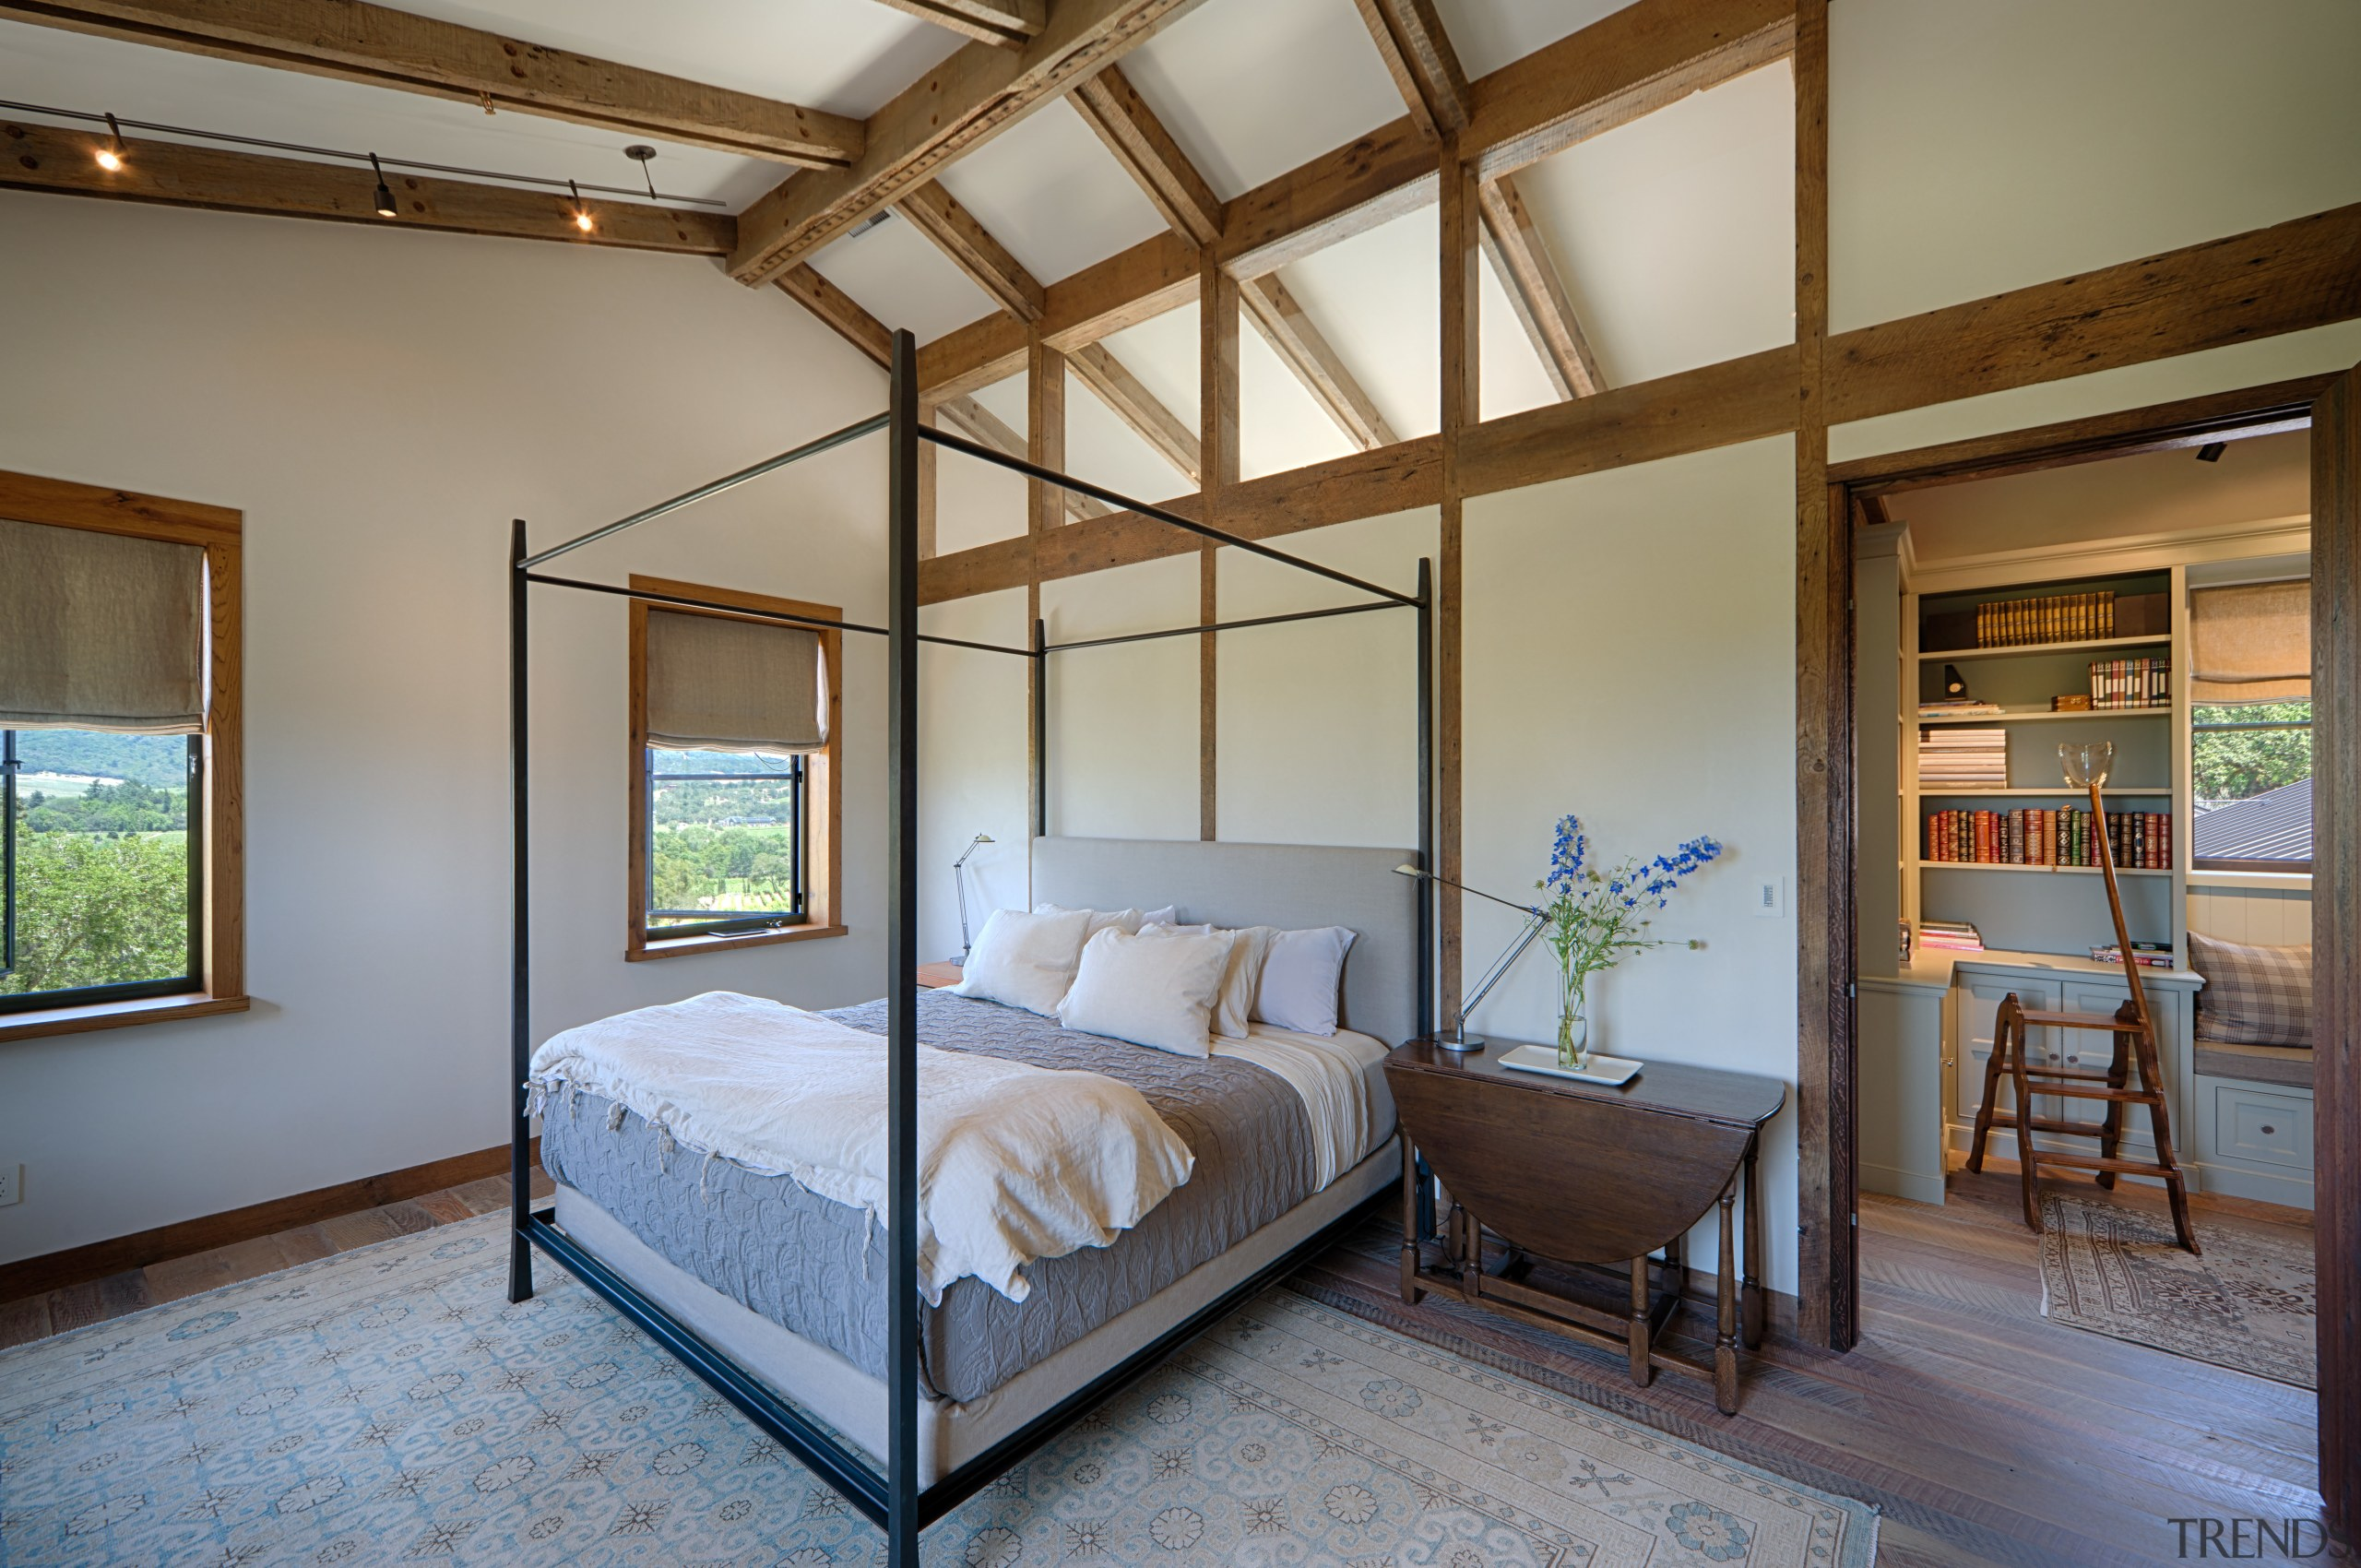 Flooring in the main bedroom of this home architecture, bedroom, ceiling, estate, home, house, interior design, real estate, room, window, gray